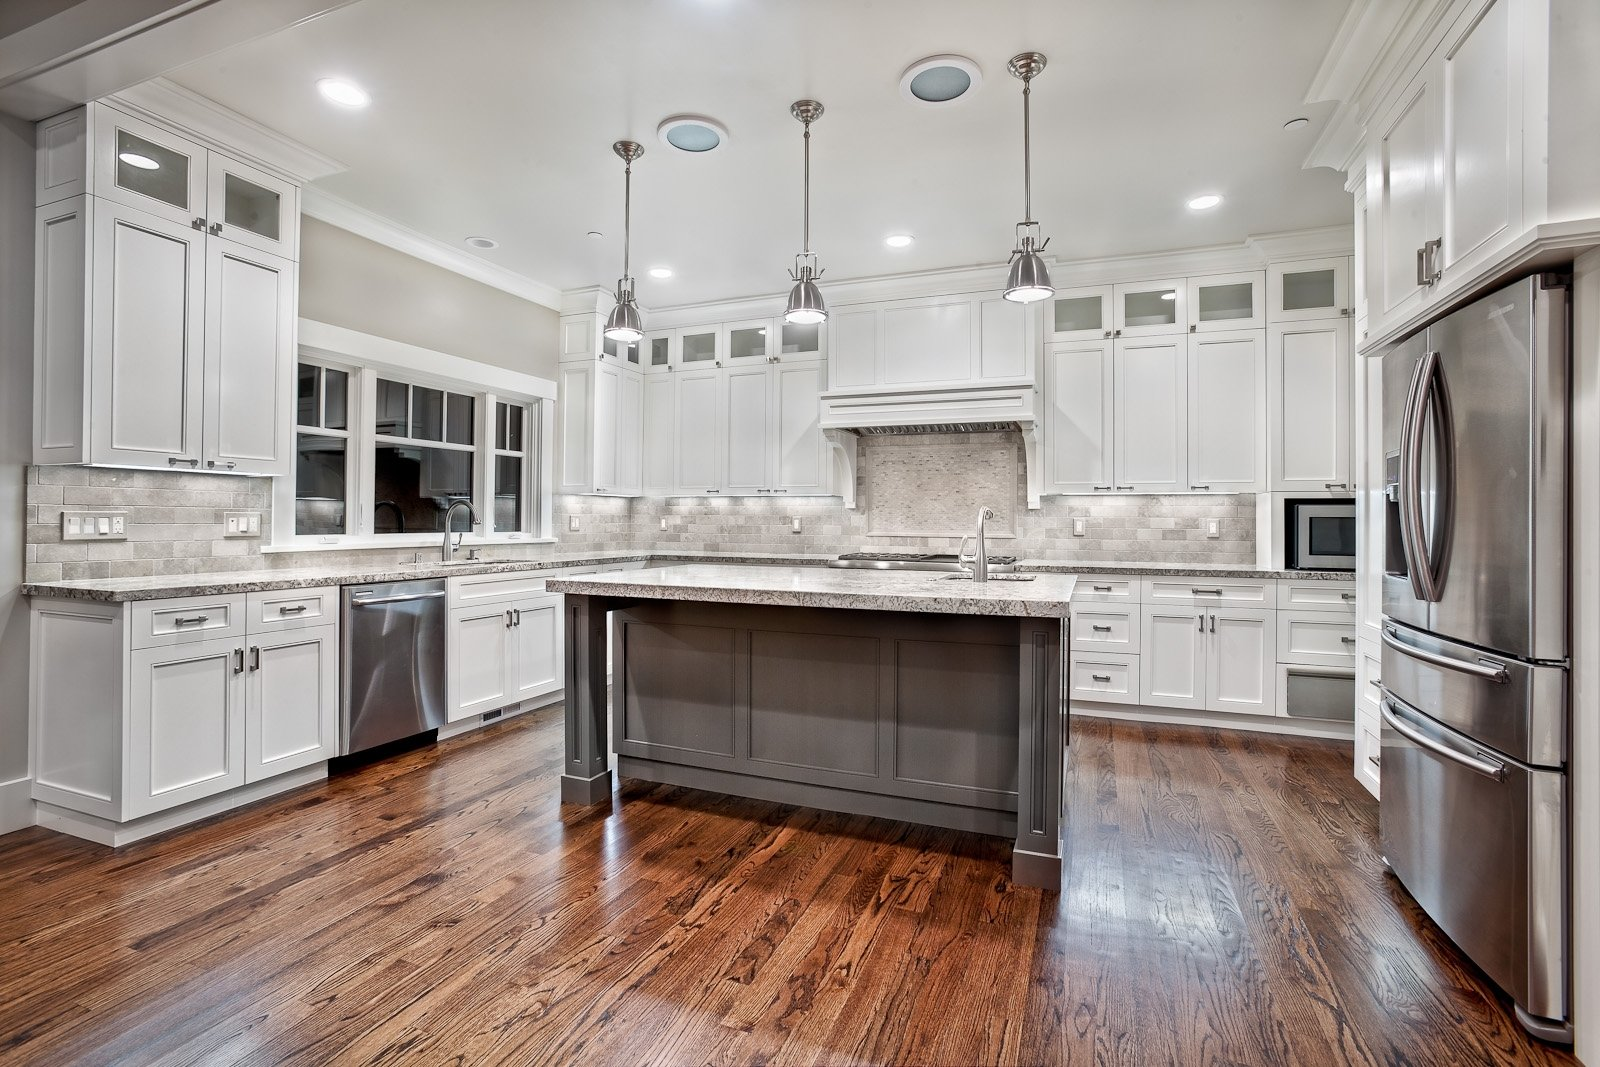 10 Gorgeous Kitchen Ideas With White Cabinets 15 beautiful white kitchen cabinets trends 2018 interior 2020